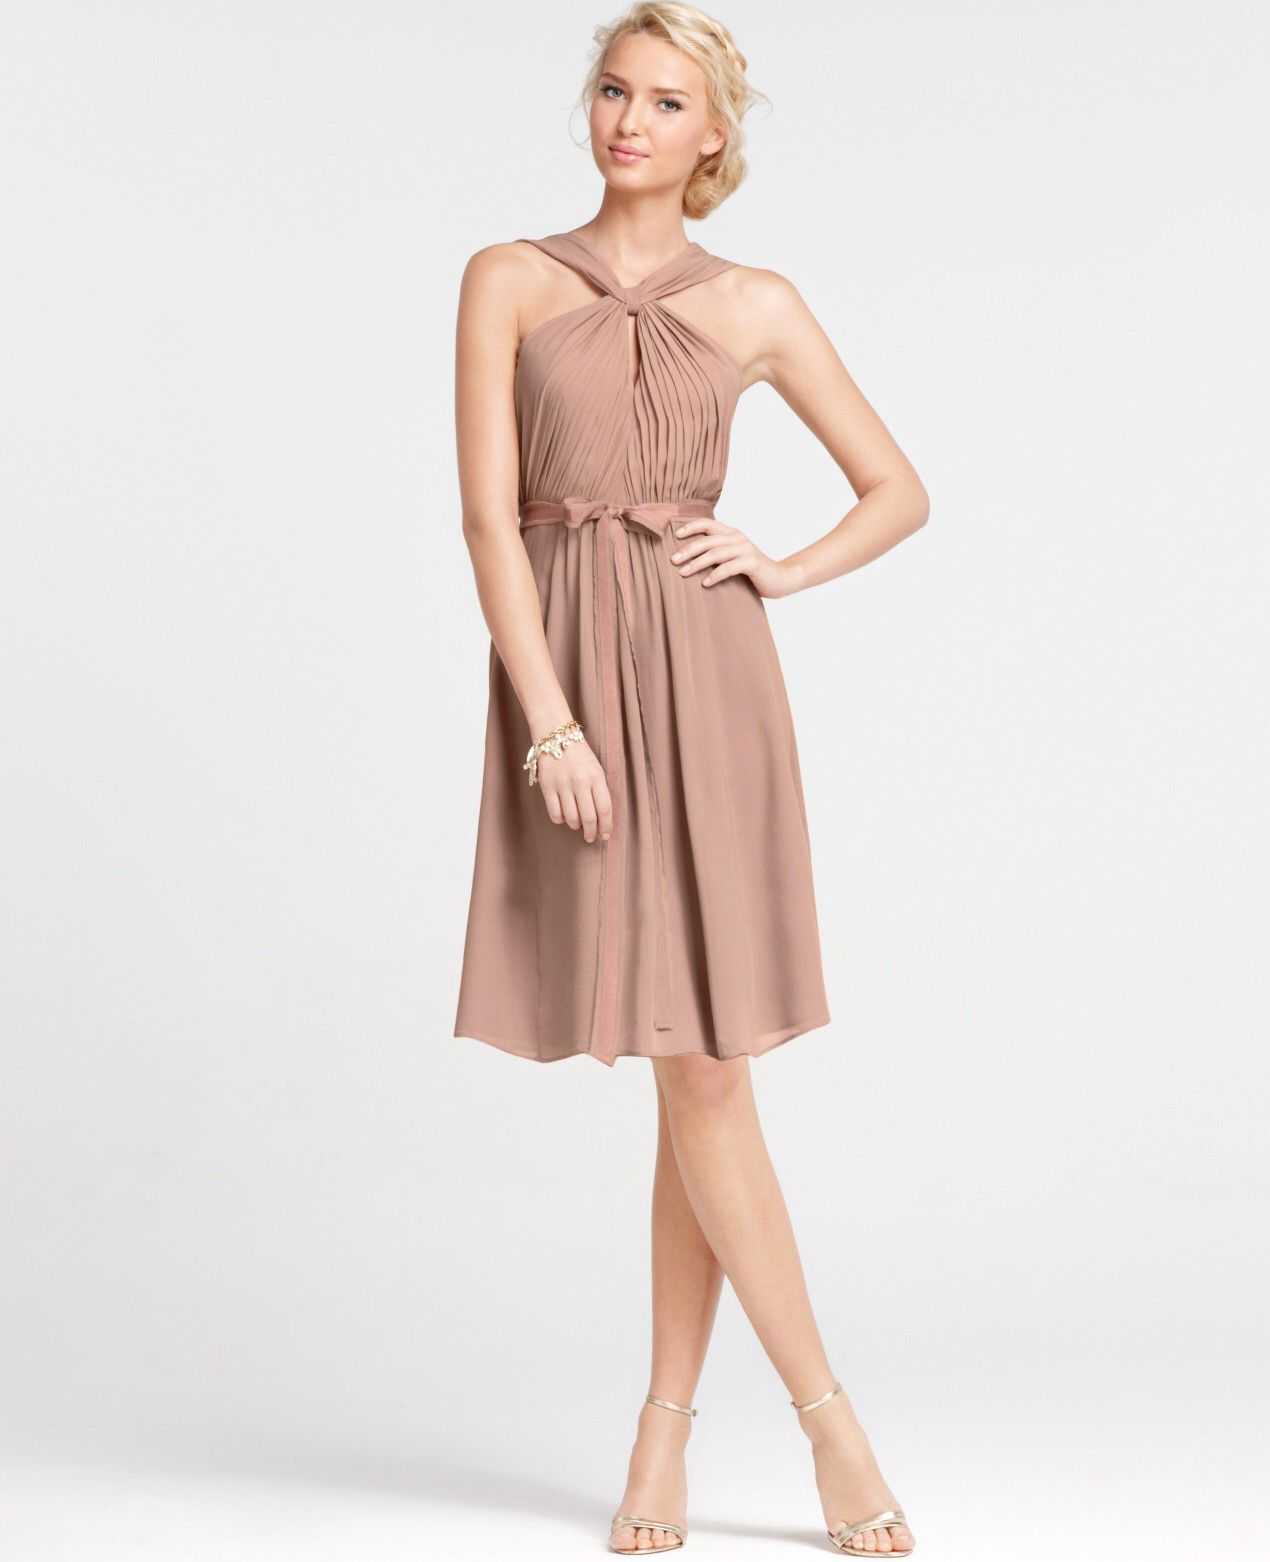 Image from httpeaweddingwp contentuploads20120321 ann taylor silk georgette keyhole halter bridesmaid dress taylor me pretty ombrellifo Images